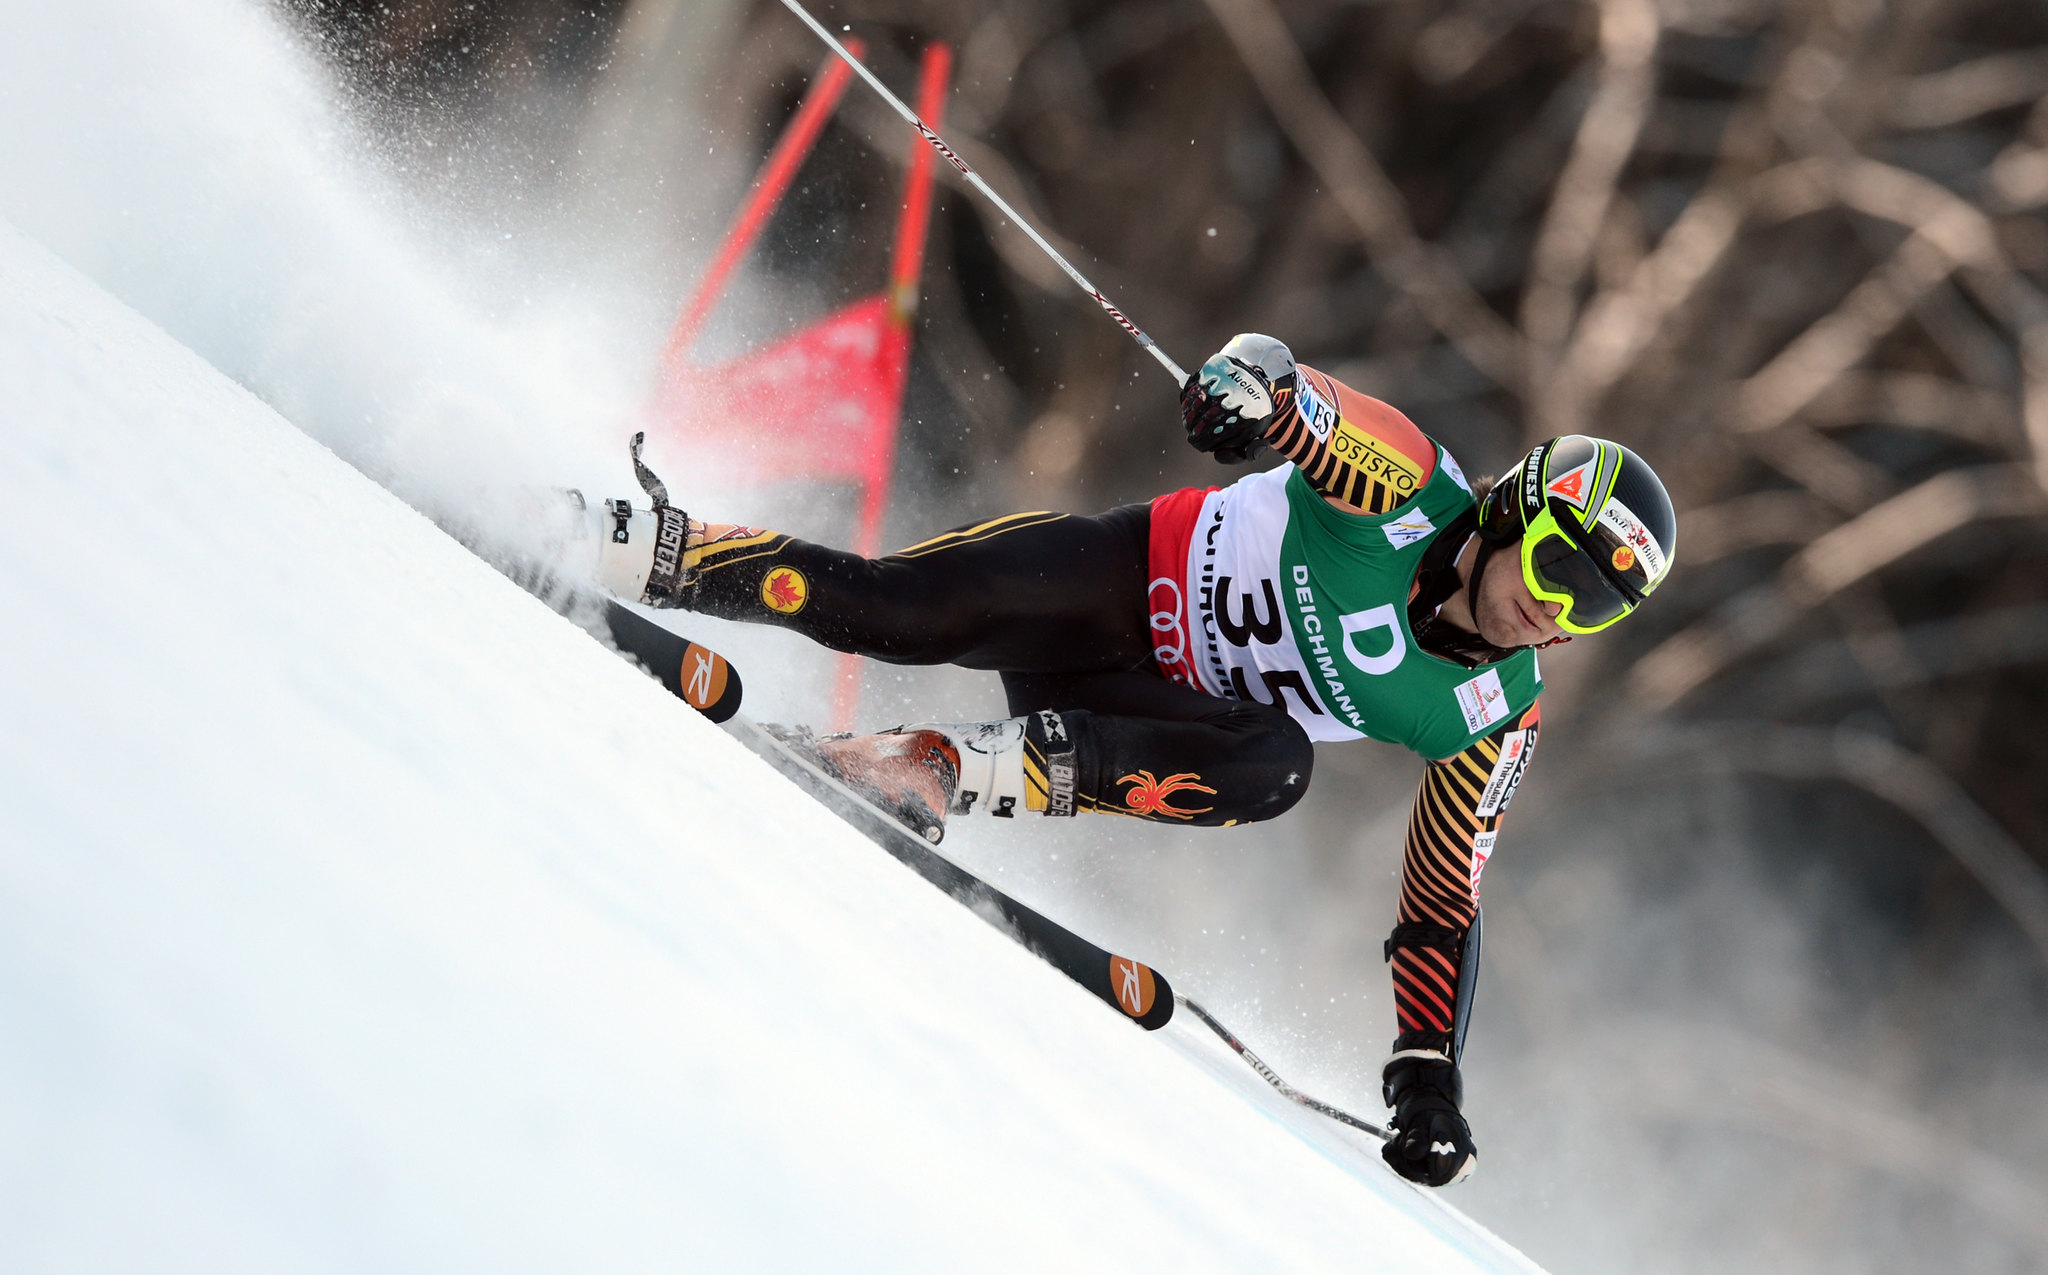 Canada's Phil Brown kicks up spray in the men's world championship giant slalom in Schladming, Austria. Brown placed 35th.